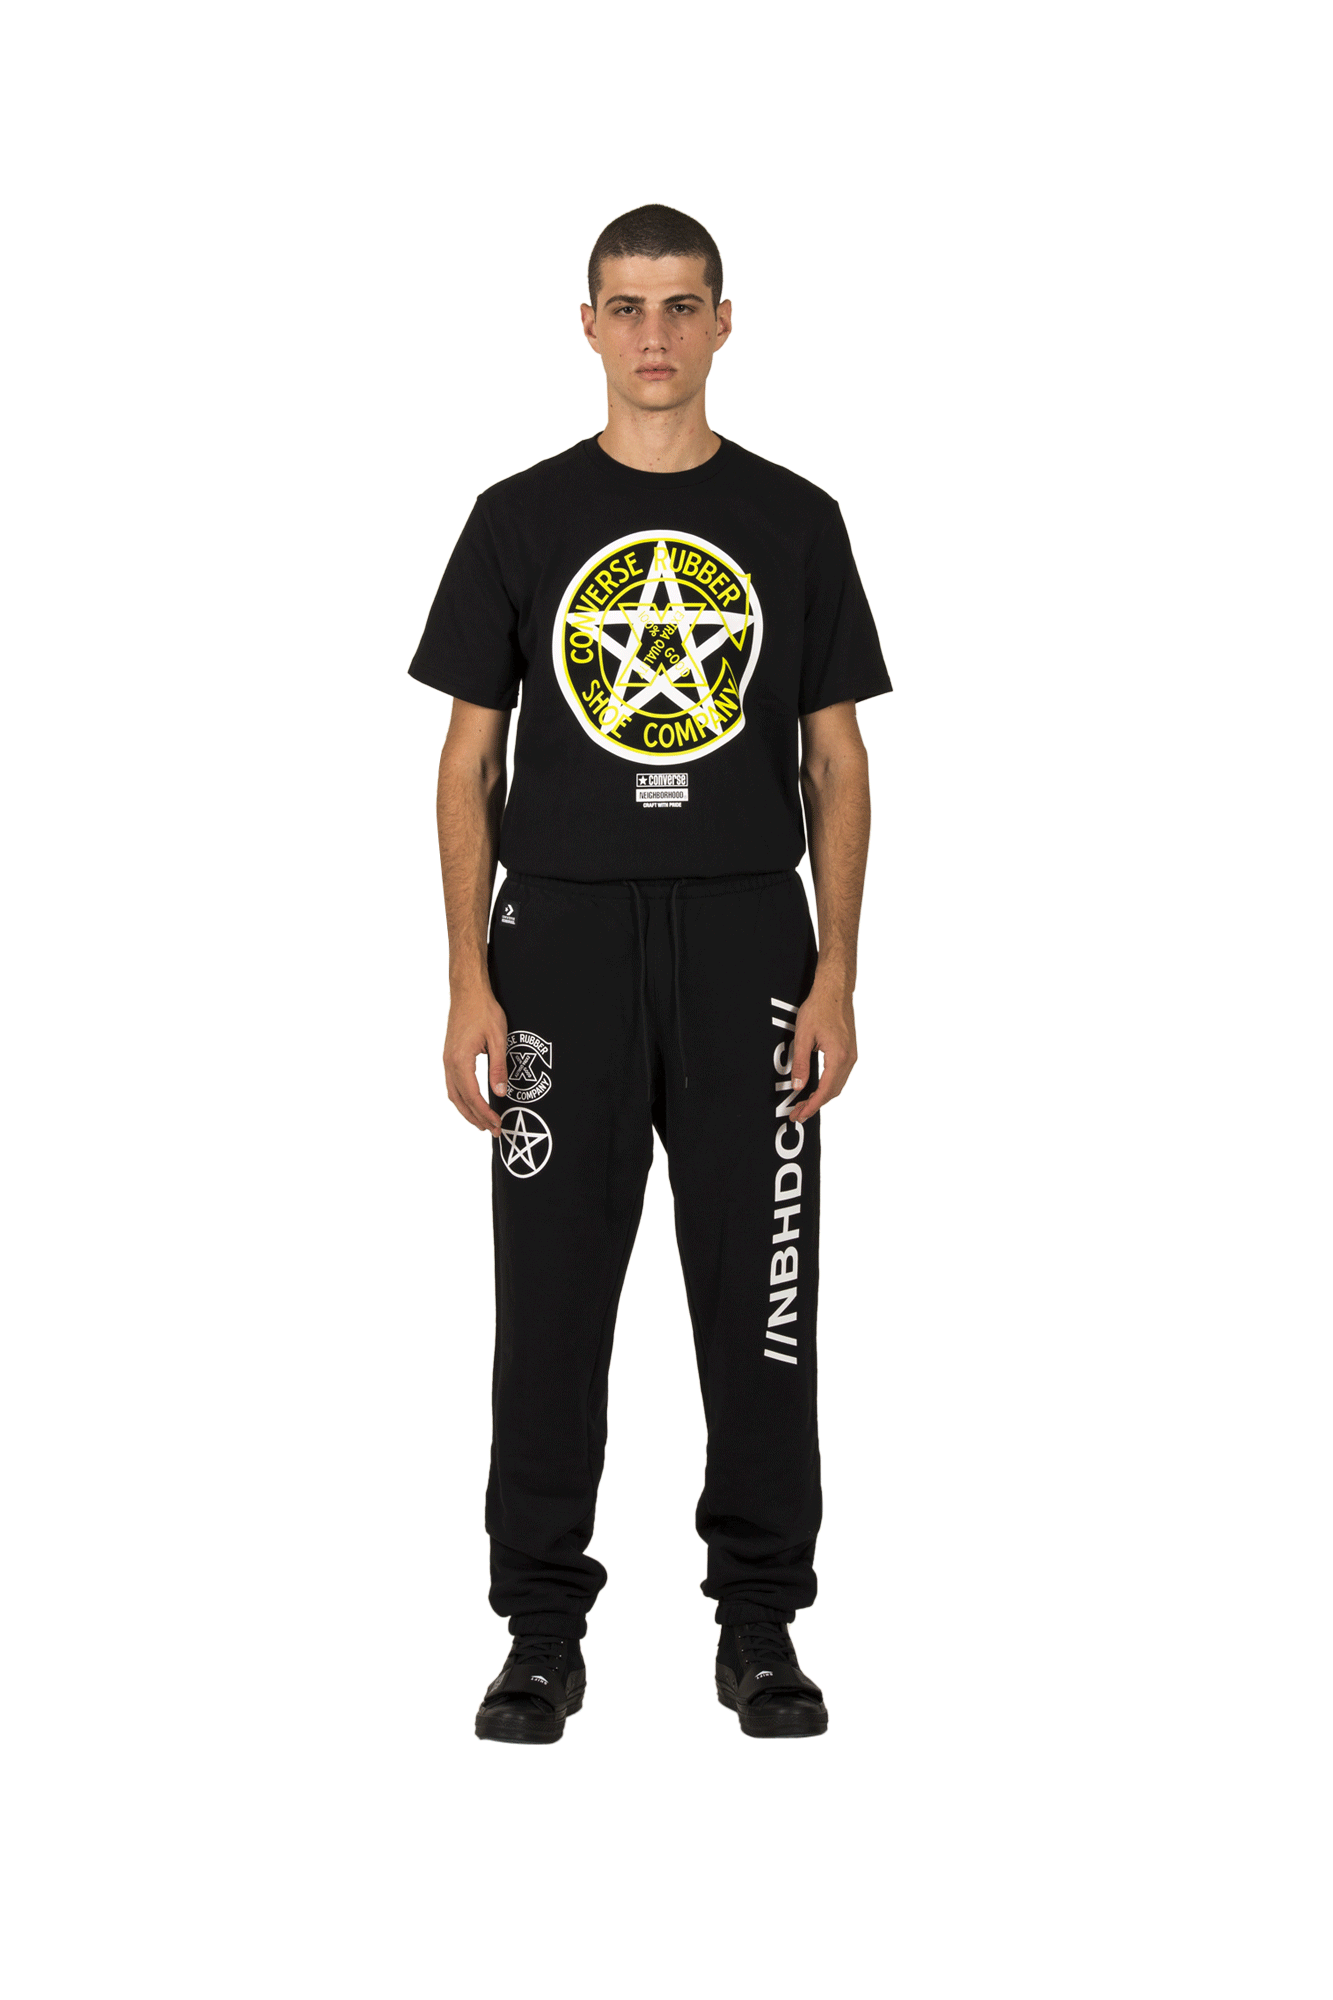 Sweatpants x Neighborhood Black